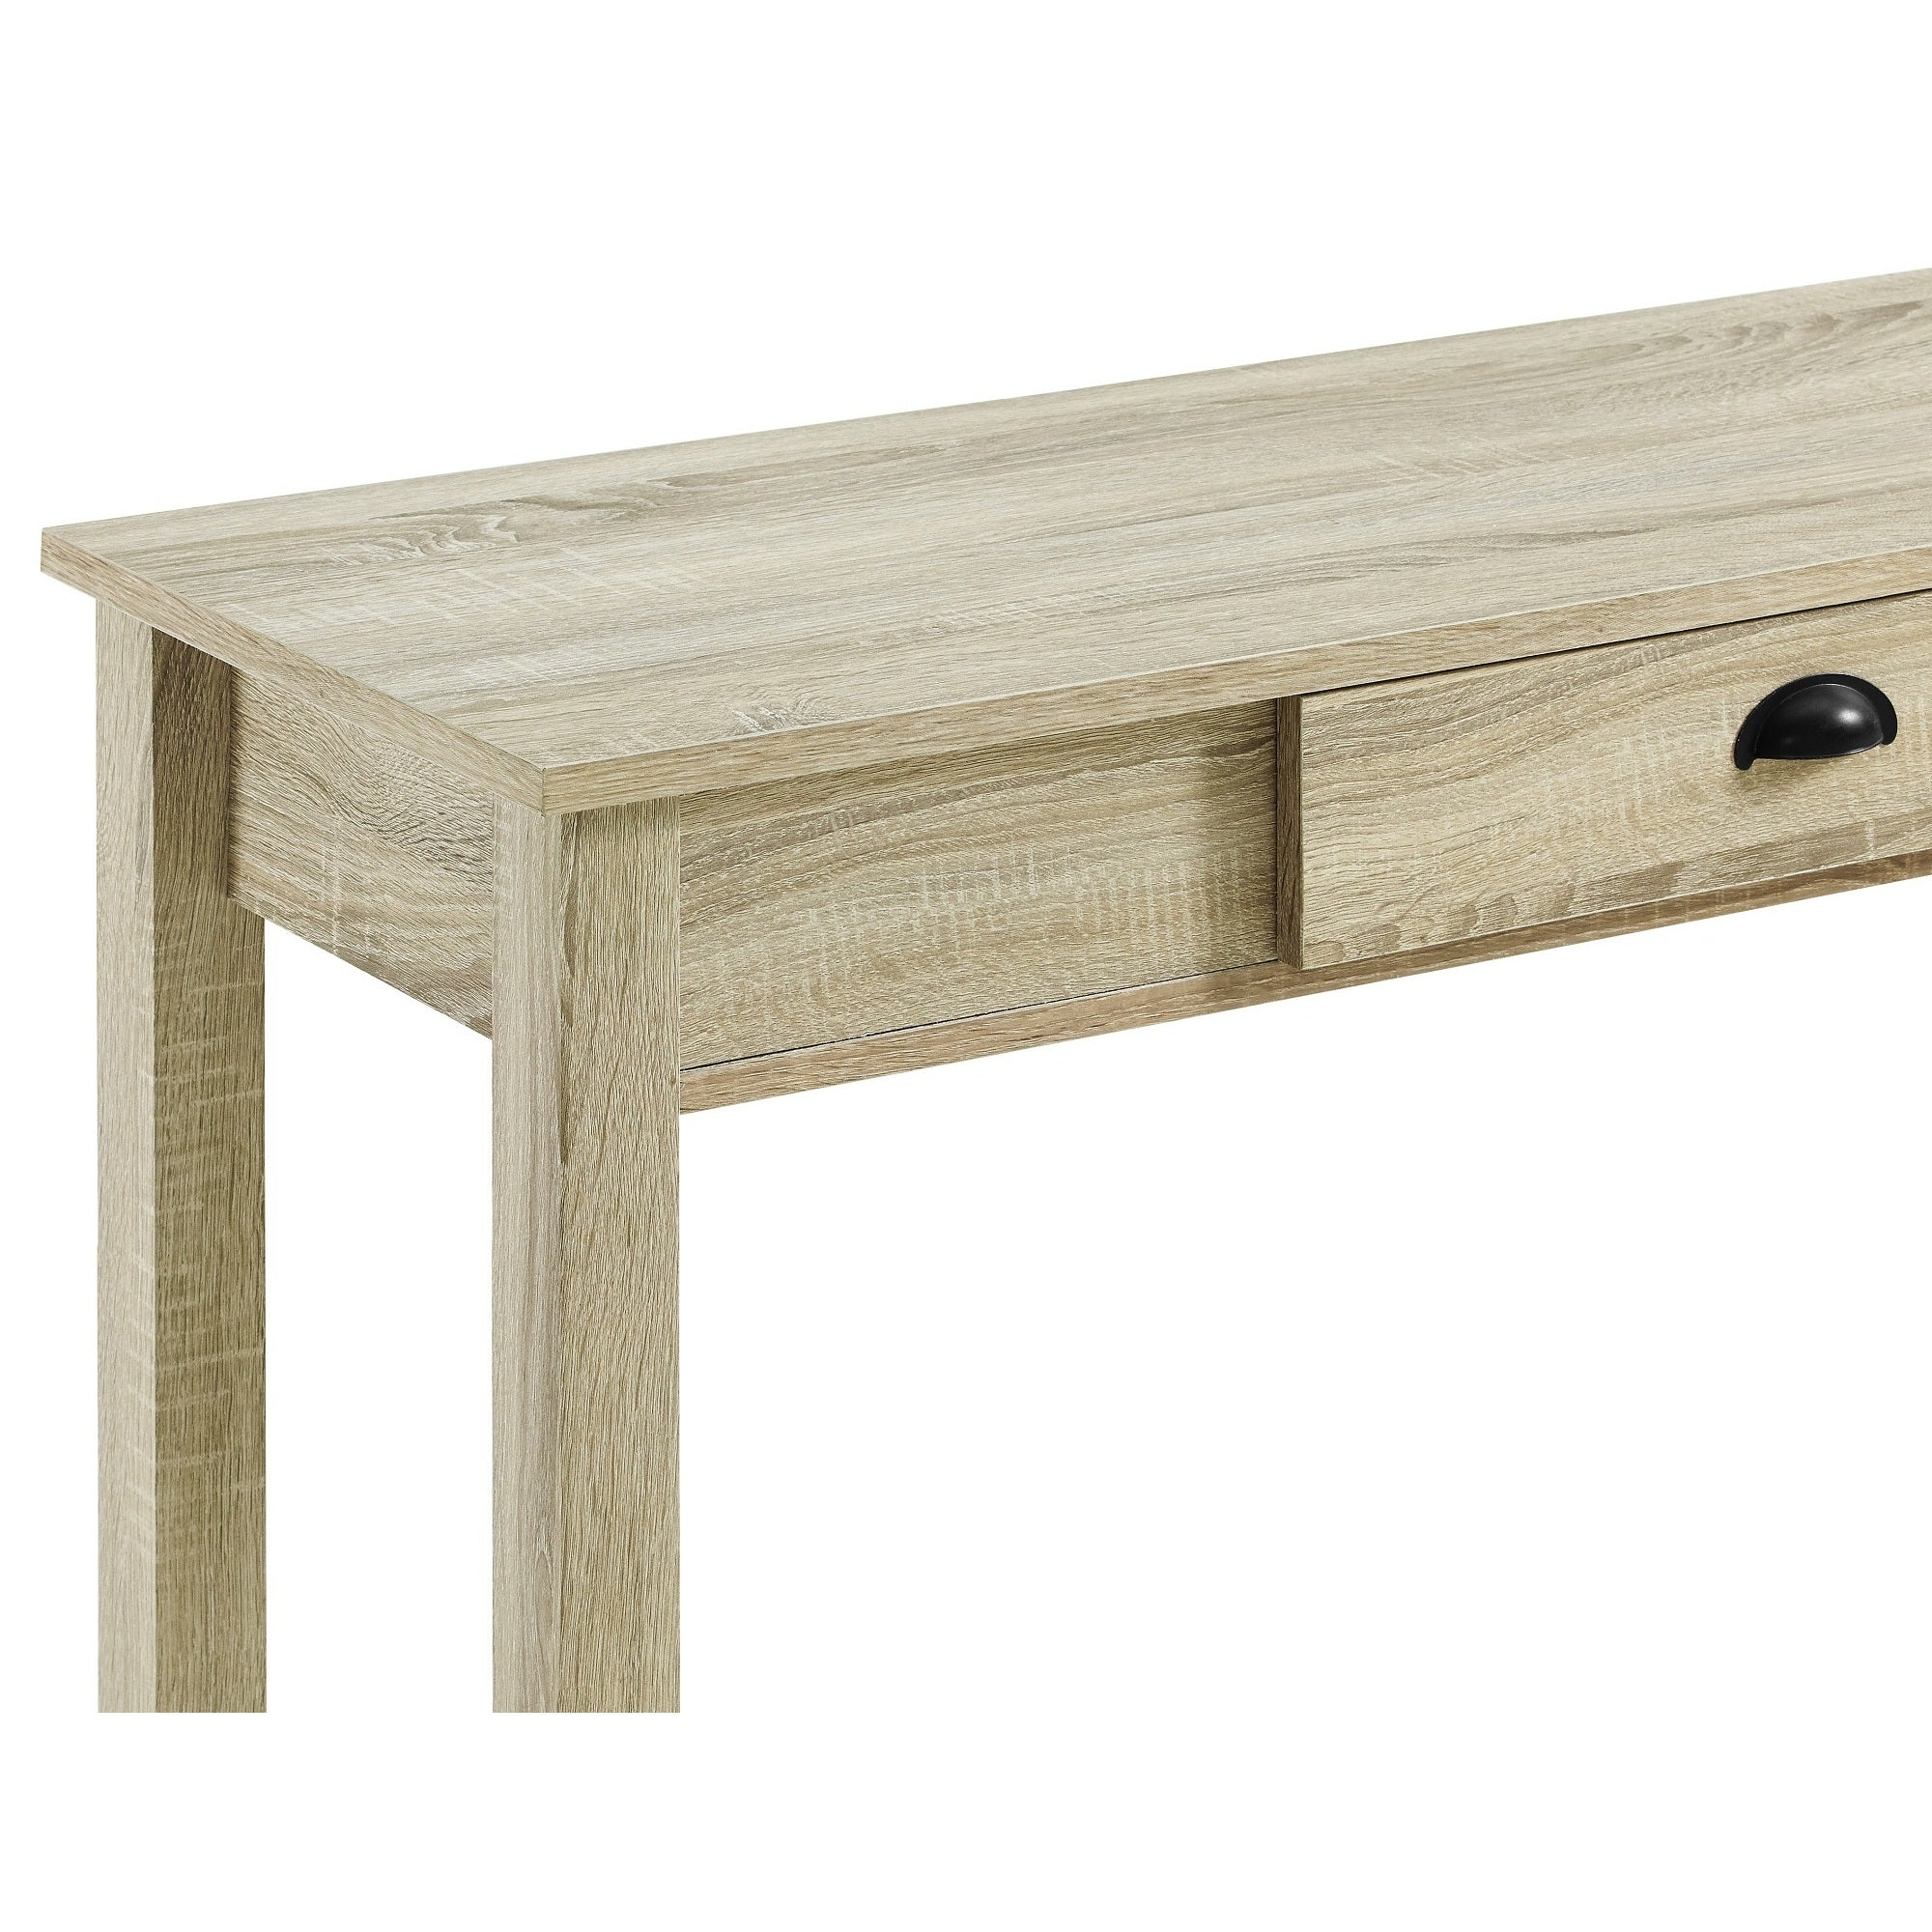 48 inch Country Style Entry Console Table Free Shipping Today